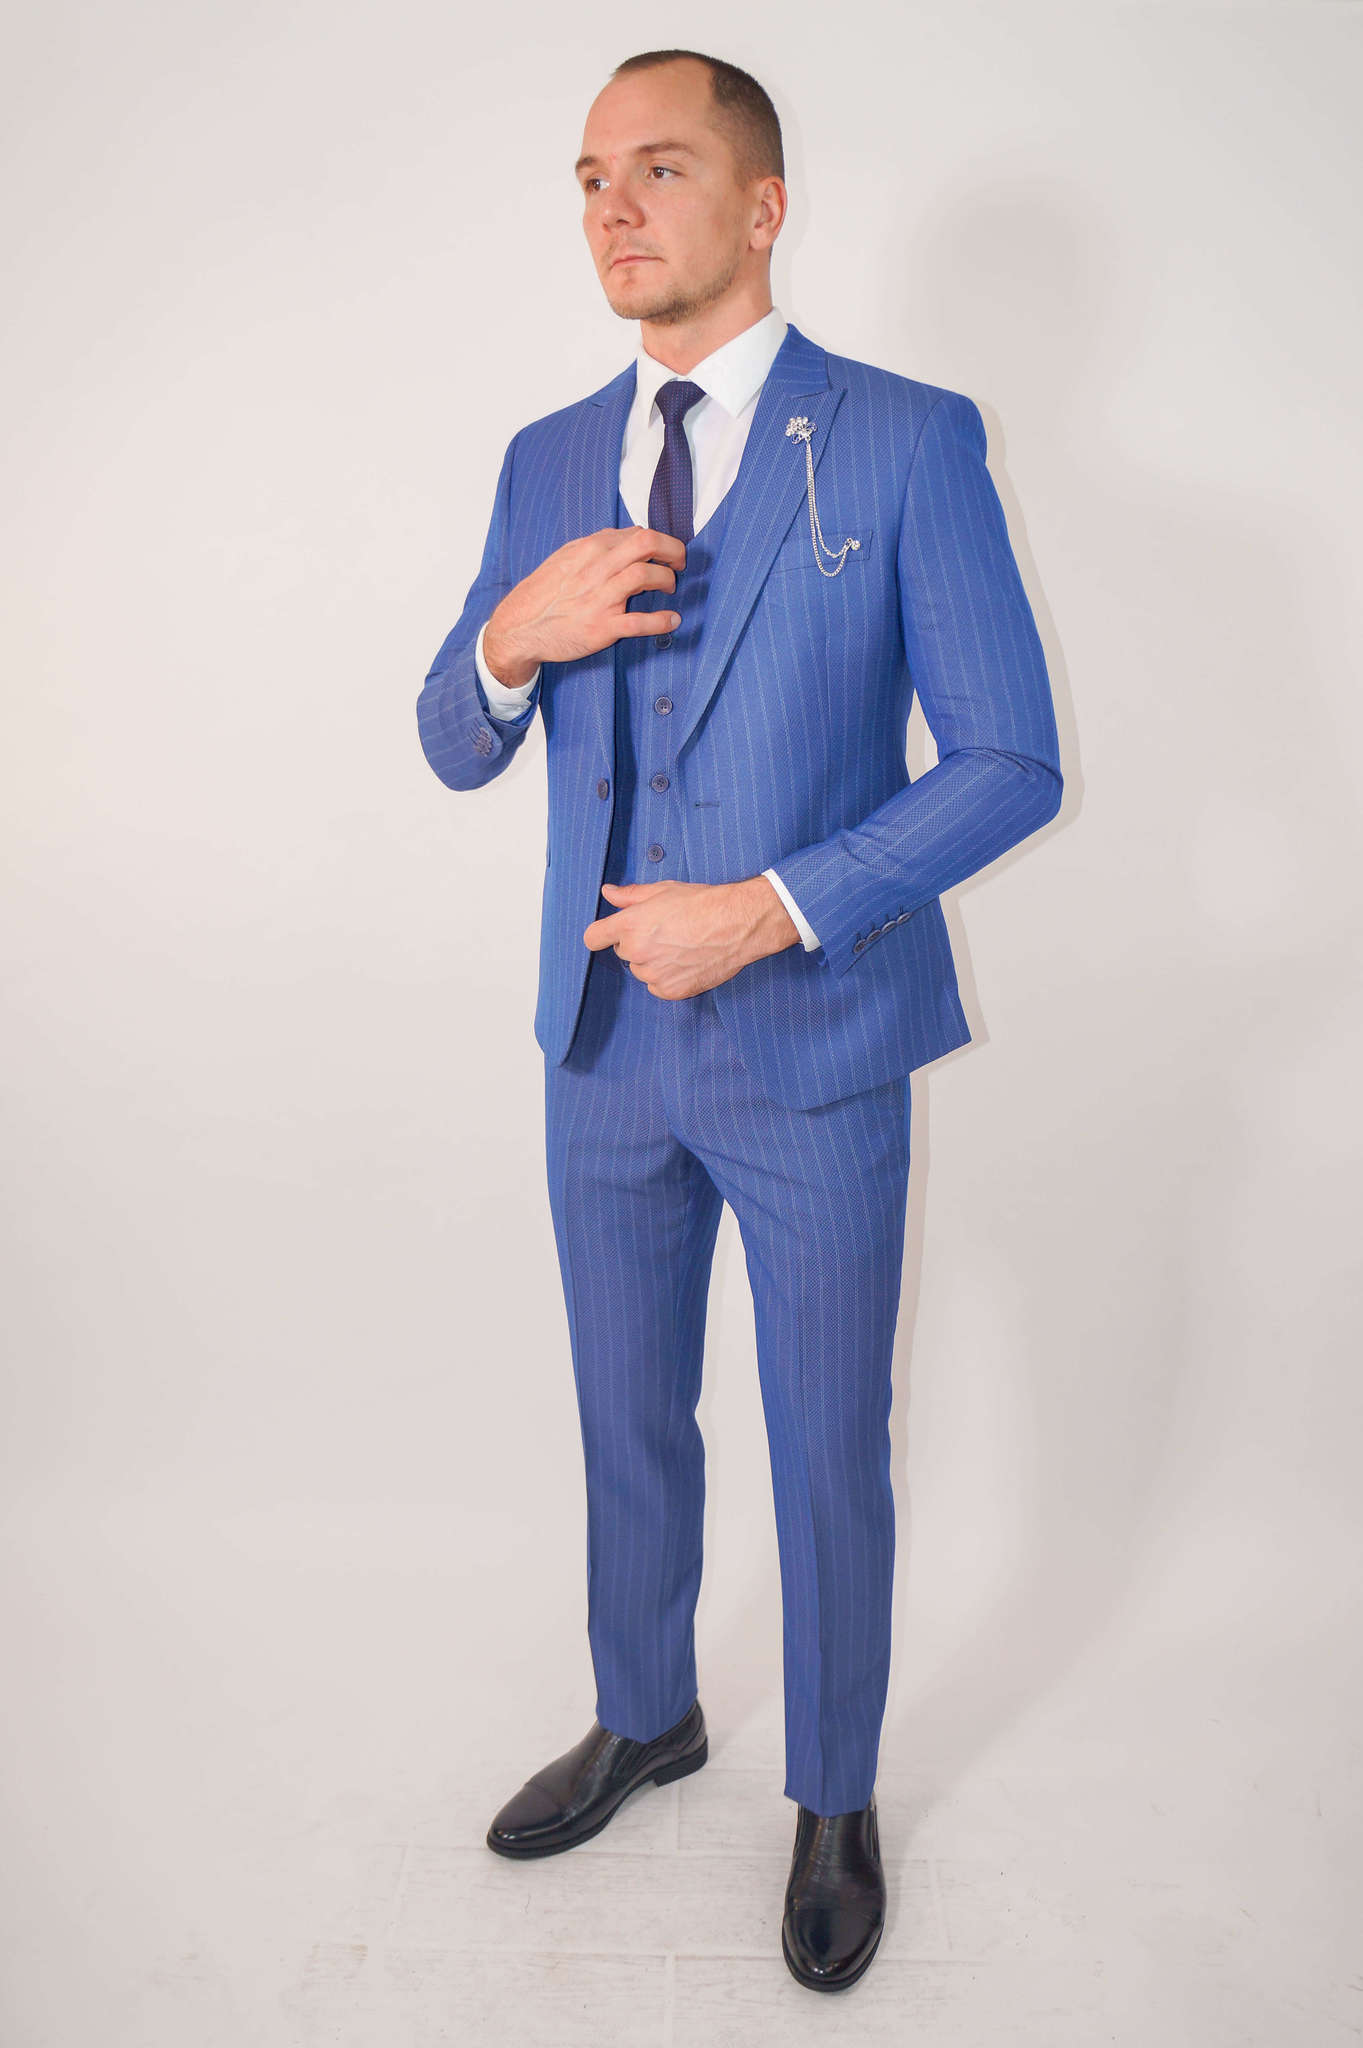 Костюмы Slim fit CESARE MARIANO / Костюм - тройка slim fit DSC02372.jpg